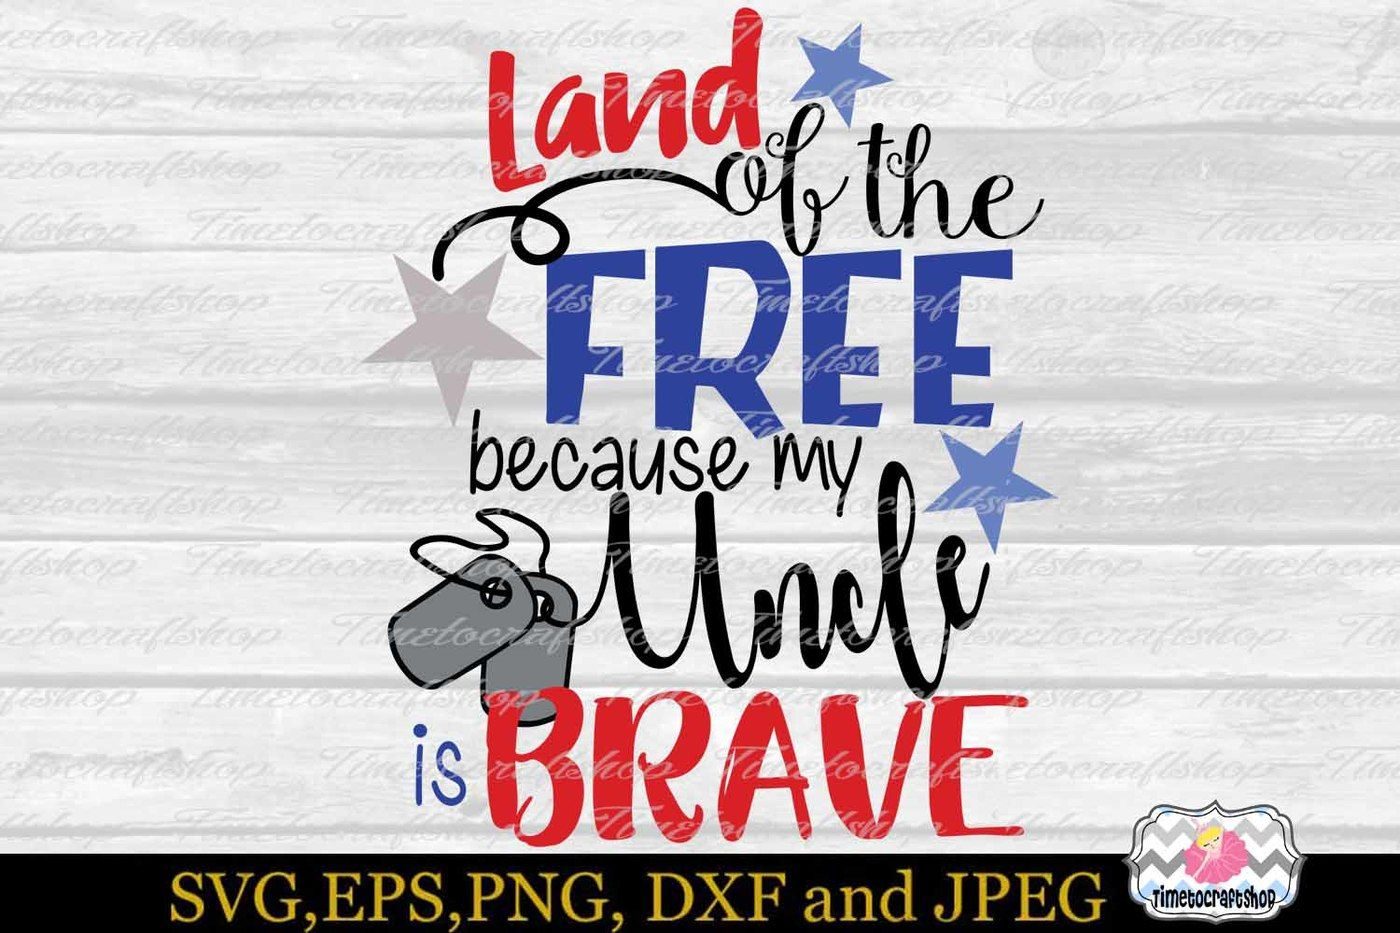 Svg Dxf Eps Png Files Land Of The Free Because My Uncle Is